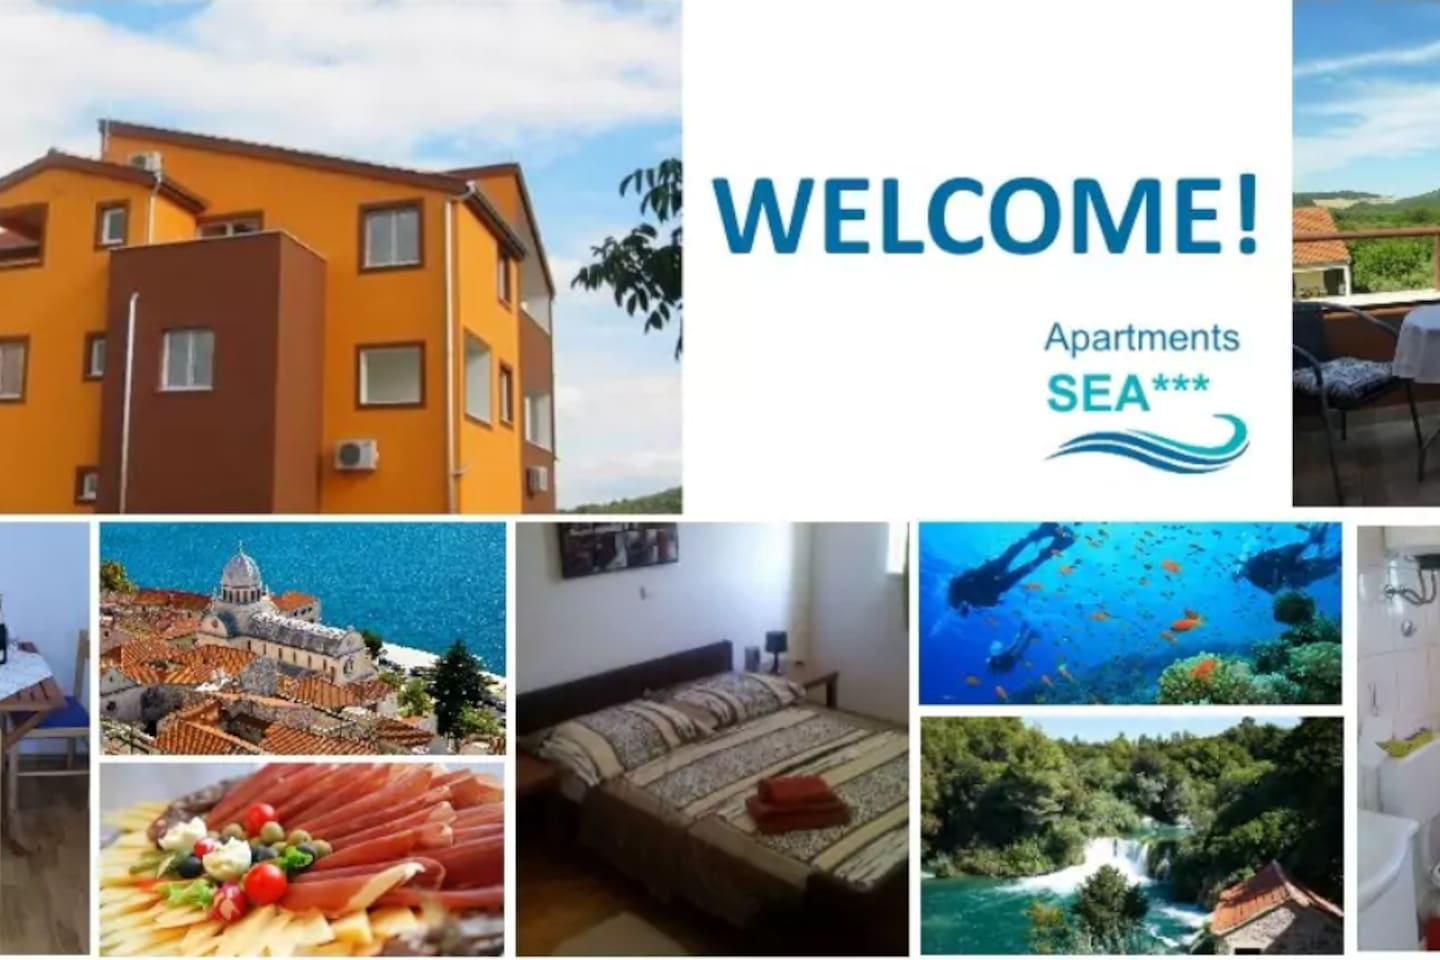 Welcome to Apartments Sea!